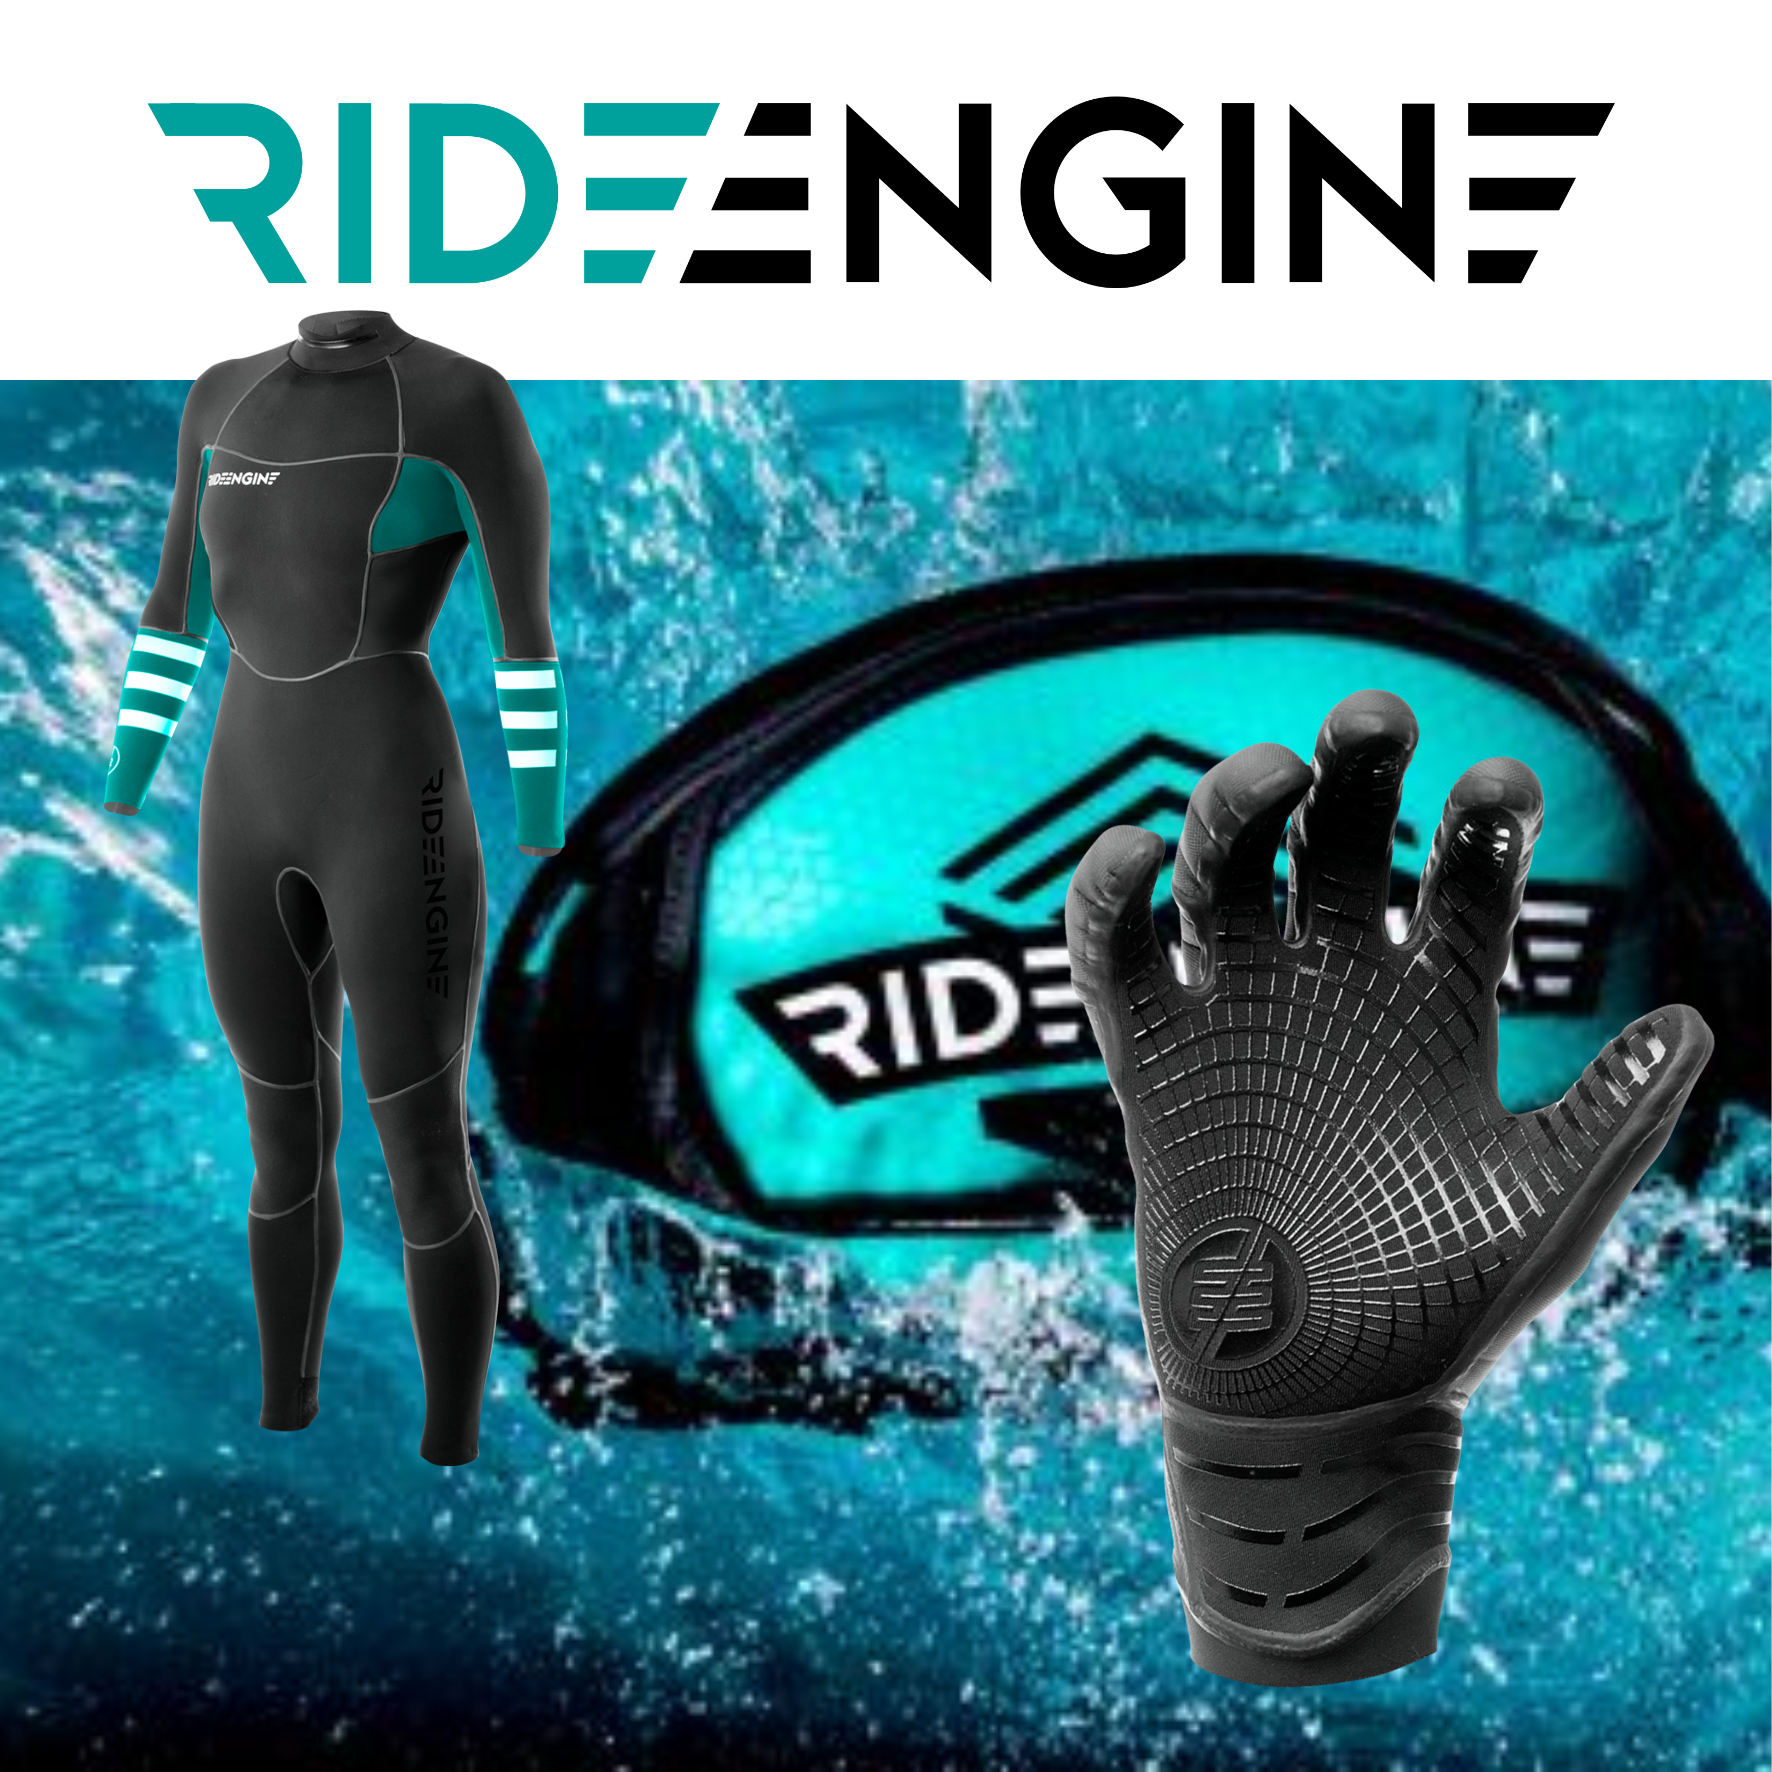 RideEngine: on-line!